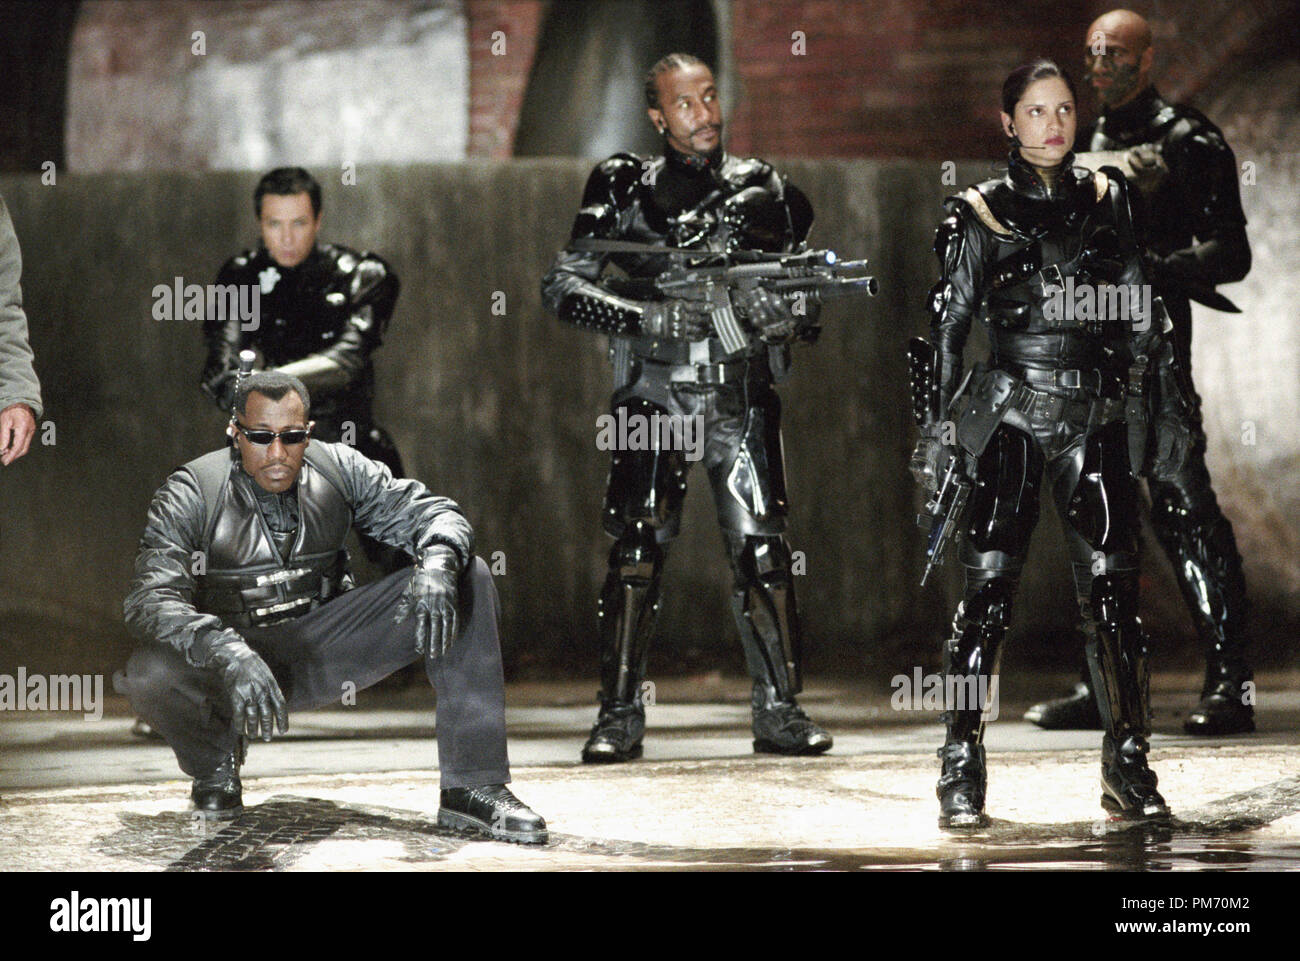 Film Still / Publicity Still from 'Blade II' Wesley Snipes, Donnie Yen, Danny John-Jules, Leonor Varela, Daz Crawford © 2002 New Line Cinema Photo Credit: Bruce Talamon - Stock Image